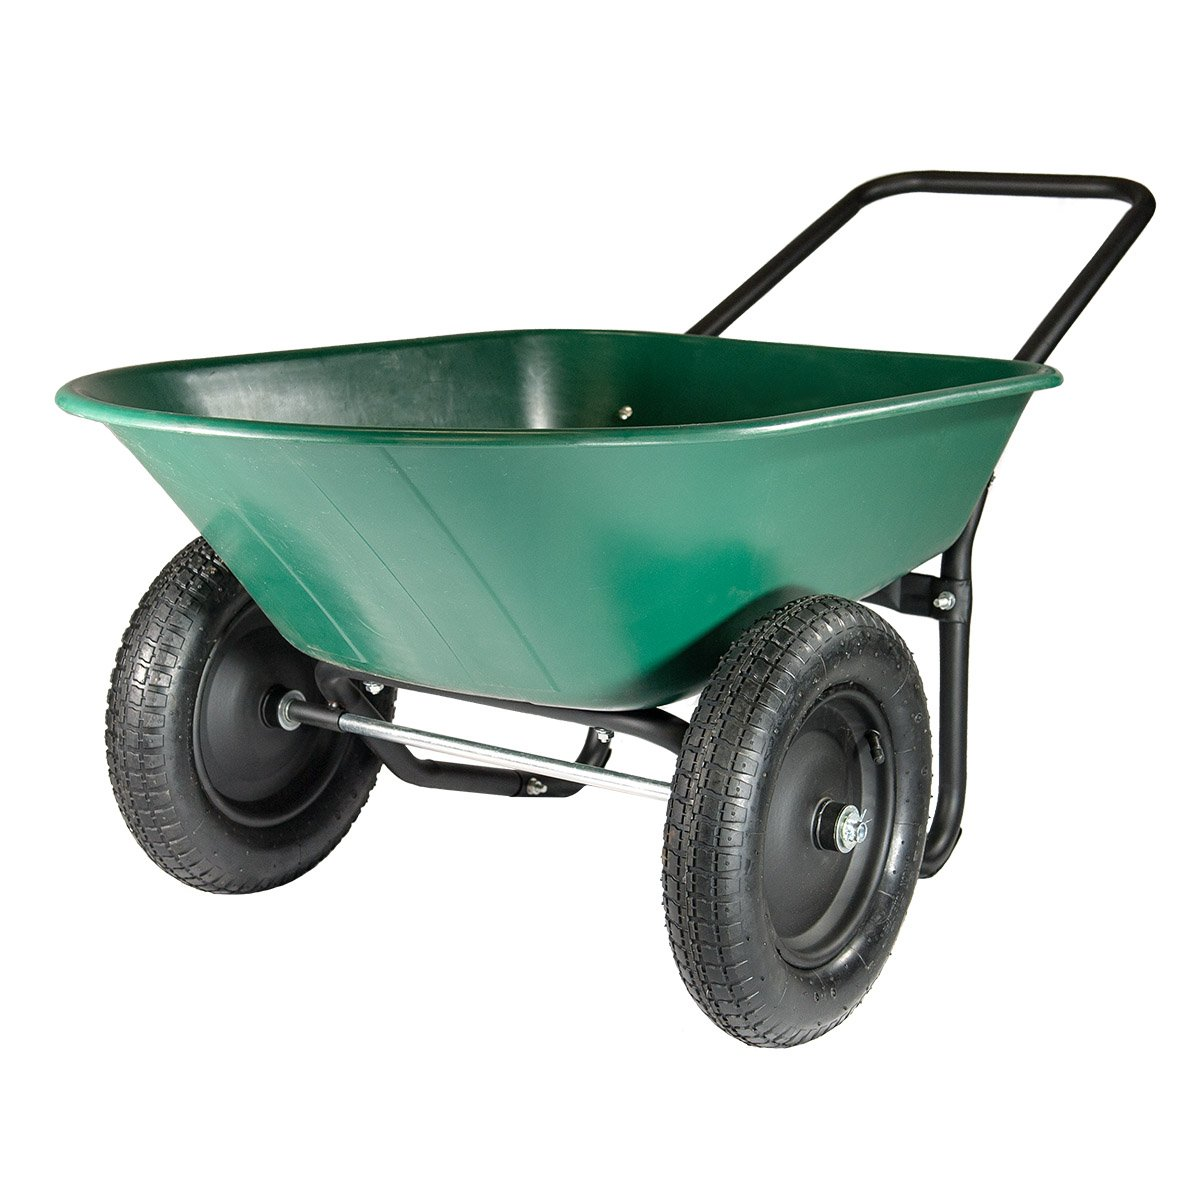 Marathon Yard Rover - 2 Tire Wheelbarrow Garden Cart - Green/Black by Marathon Industries